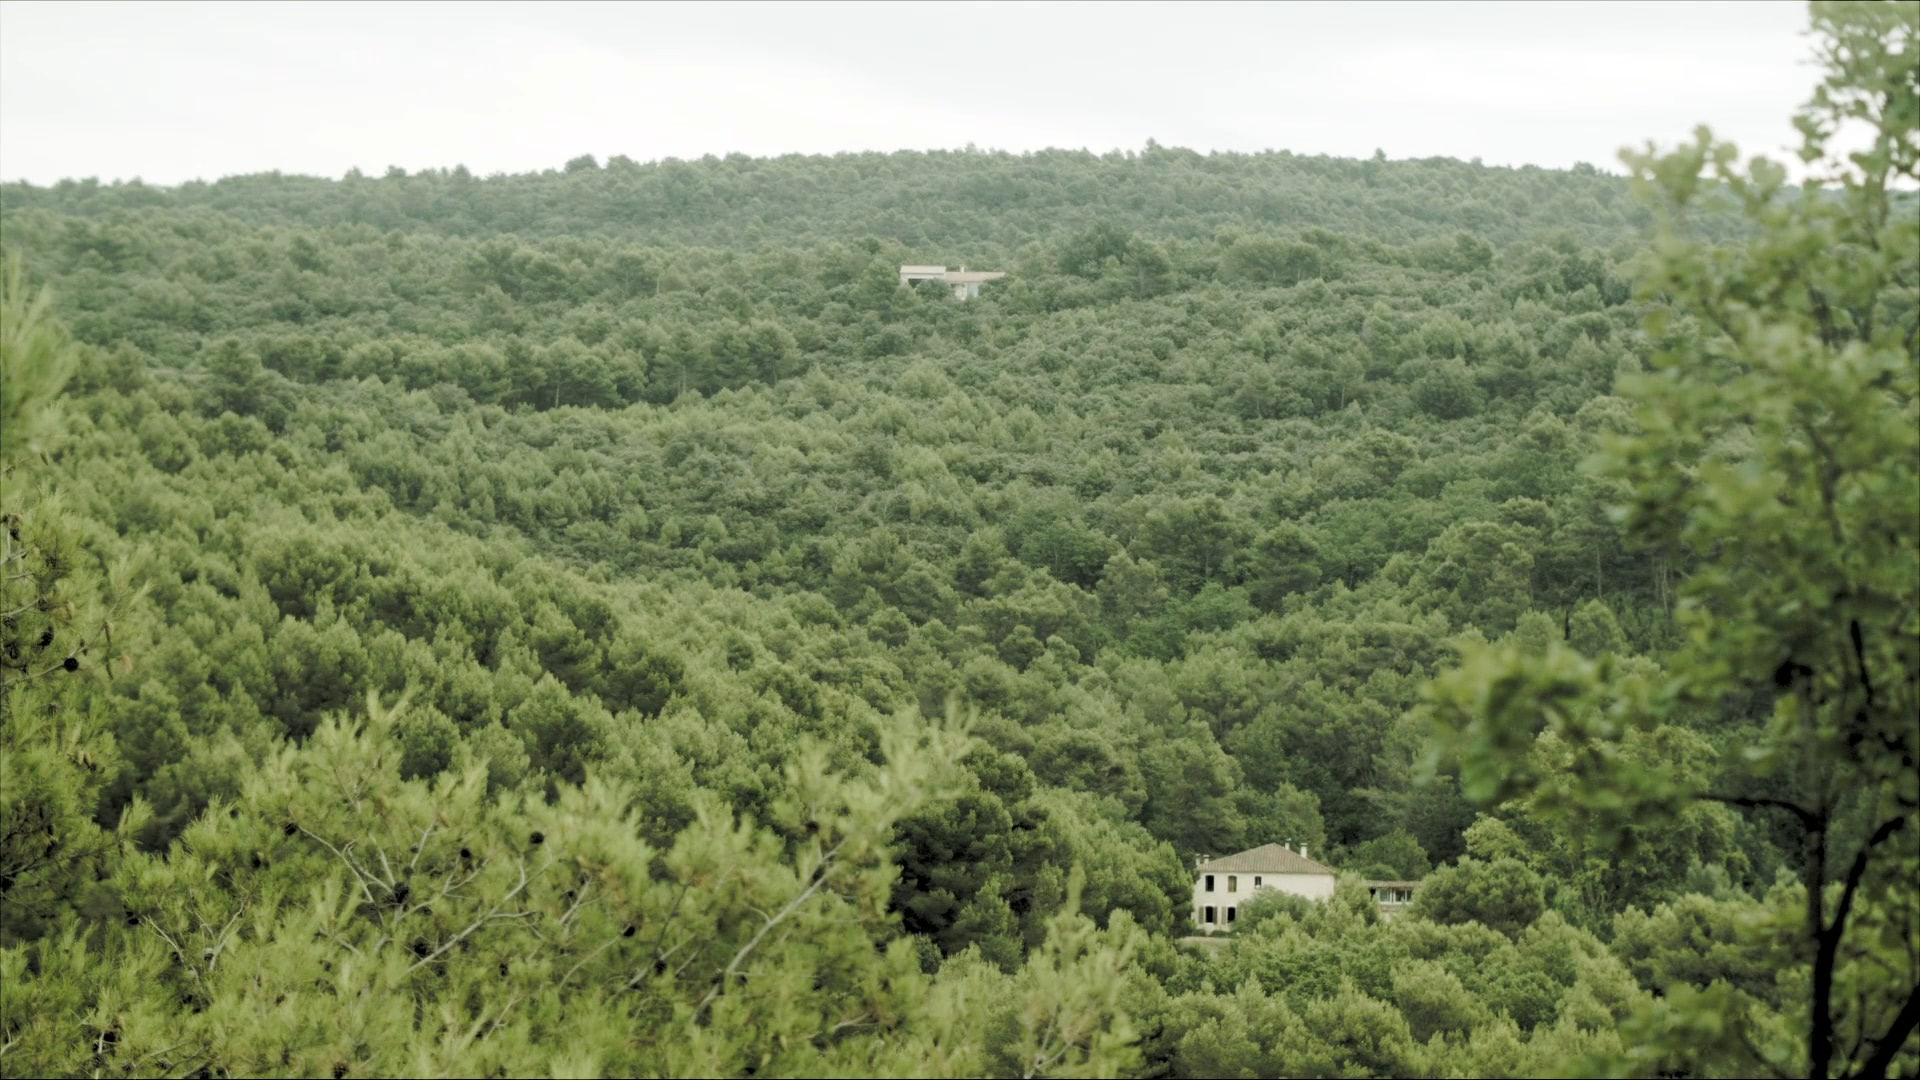 Two small houses in the distance surround by a lush green forest.